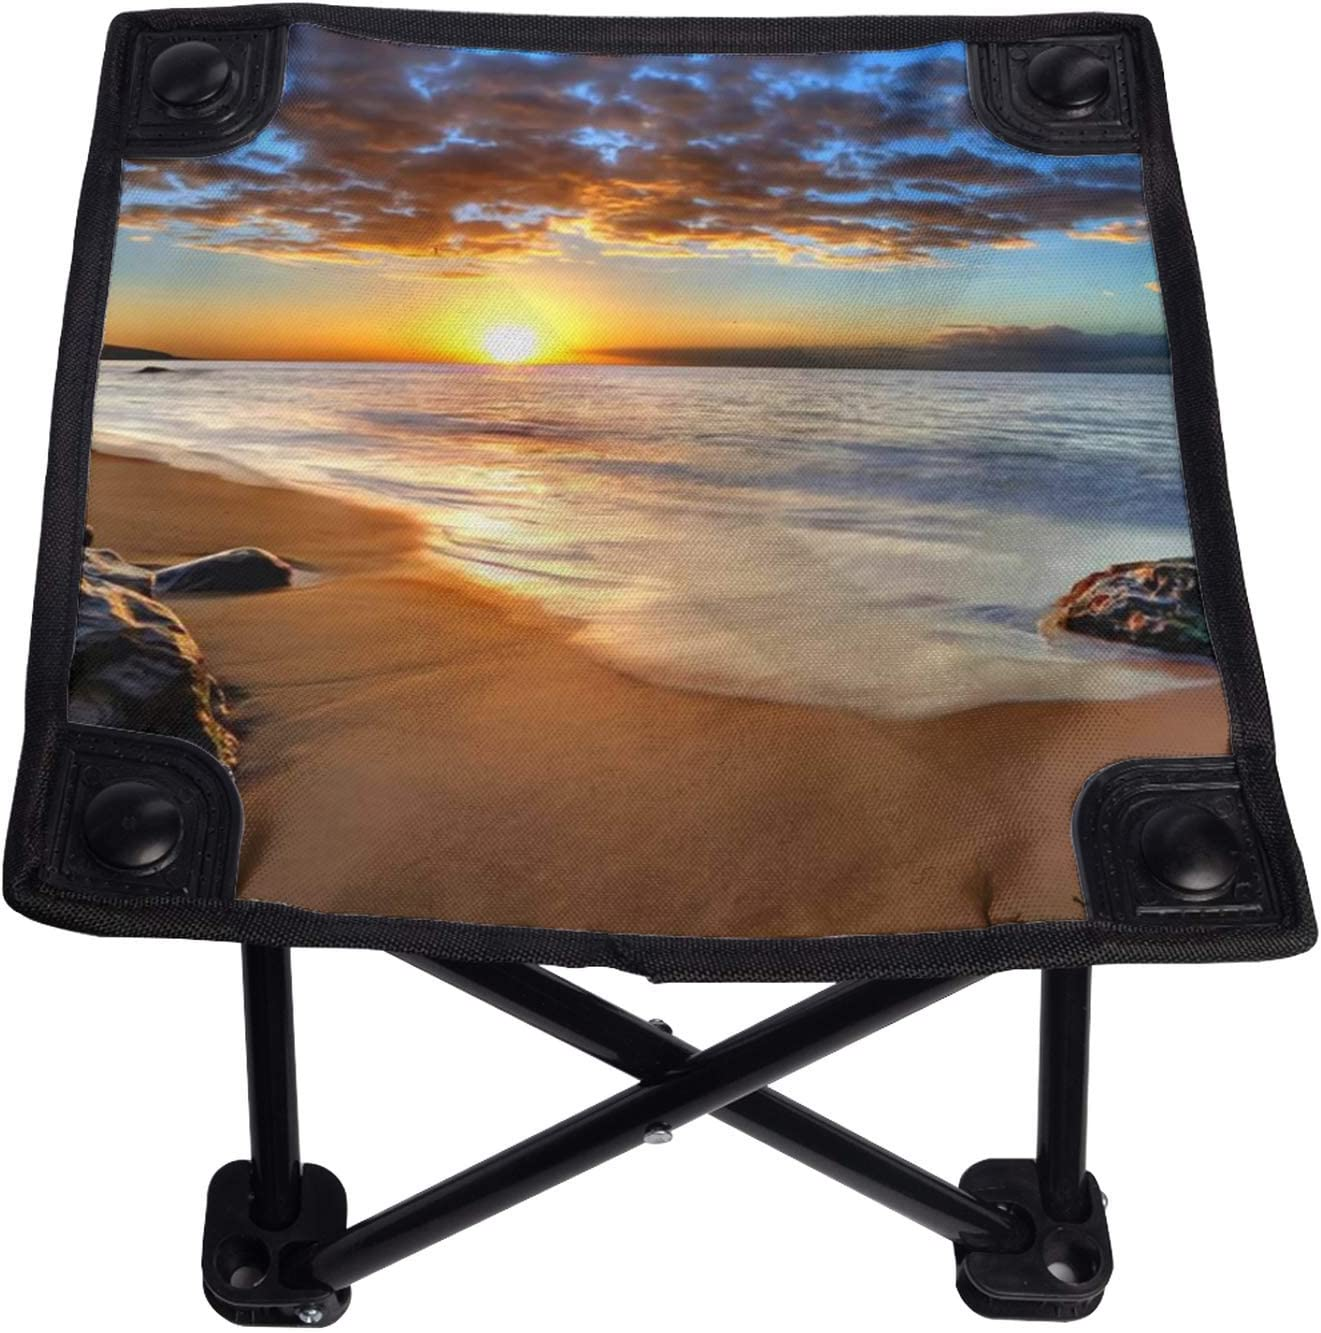 Camping Stool Beach Sunset Mini Chair for Daily bargain sale Folding Portable Great interest